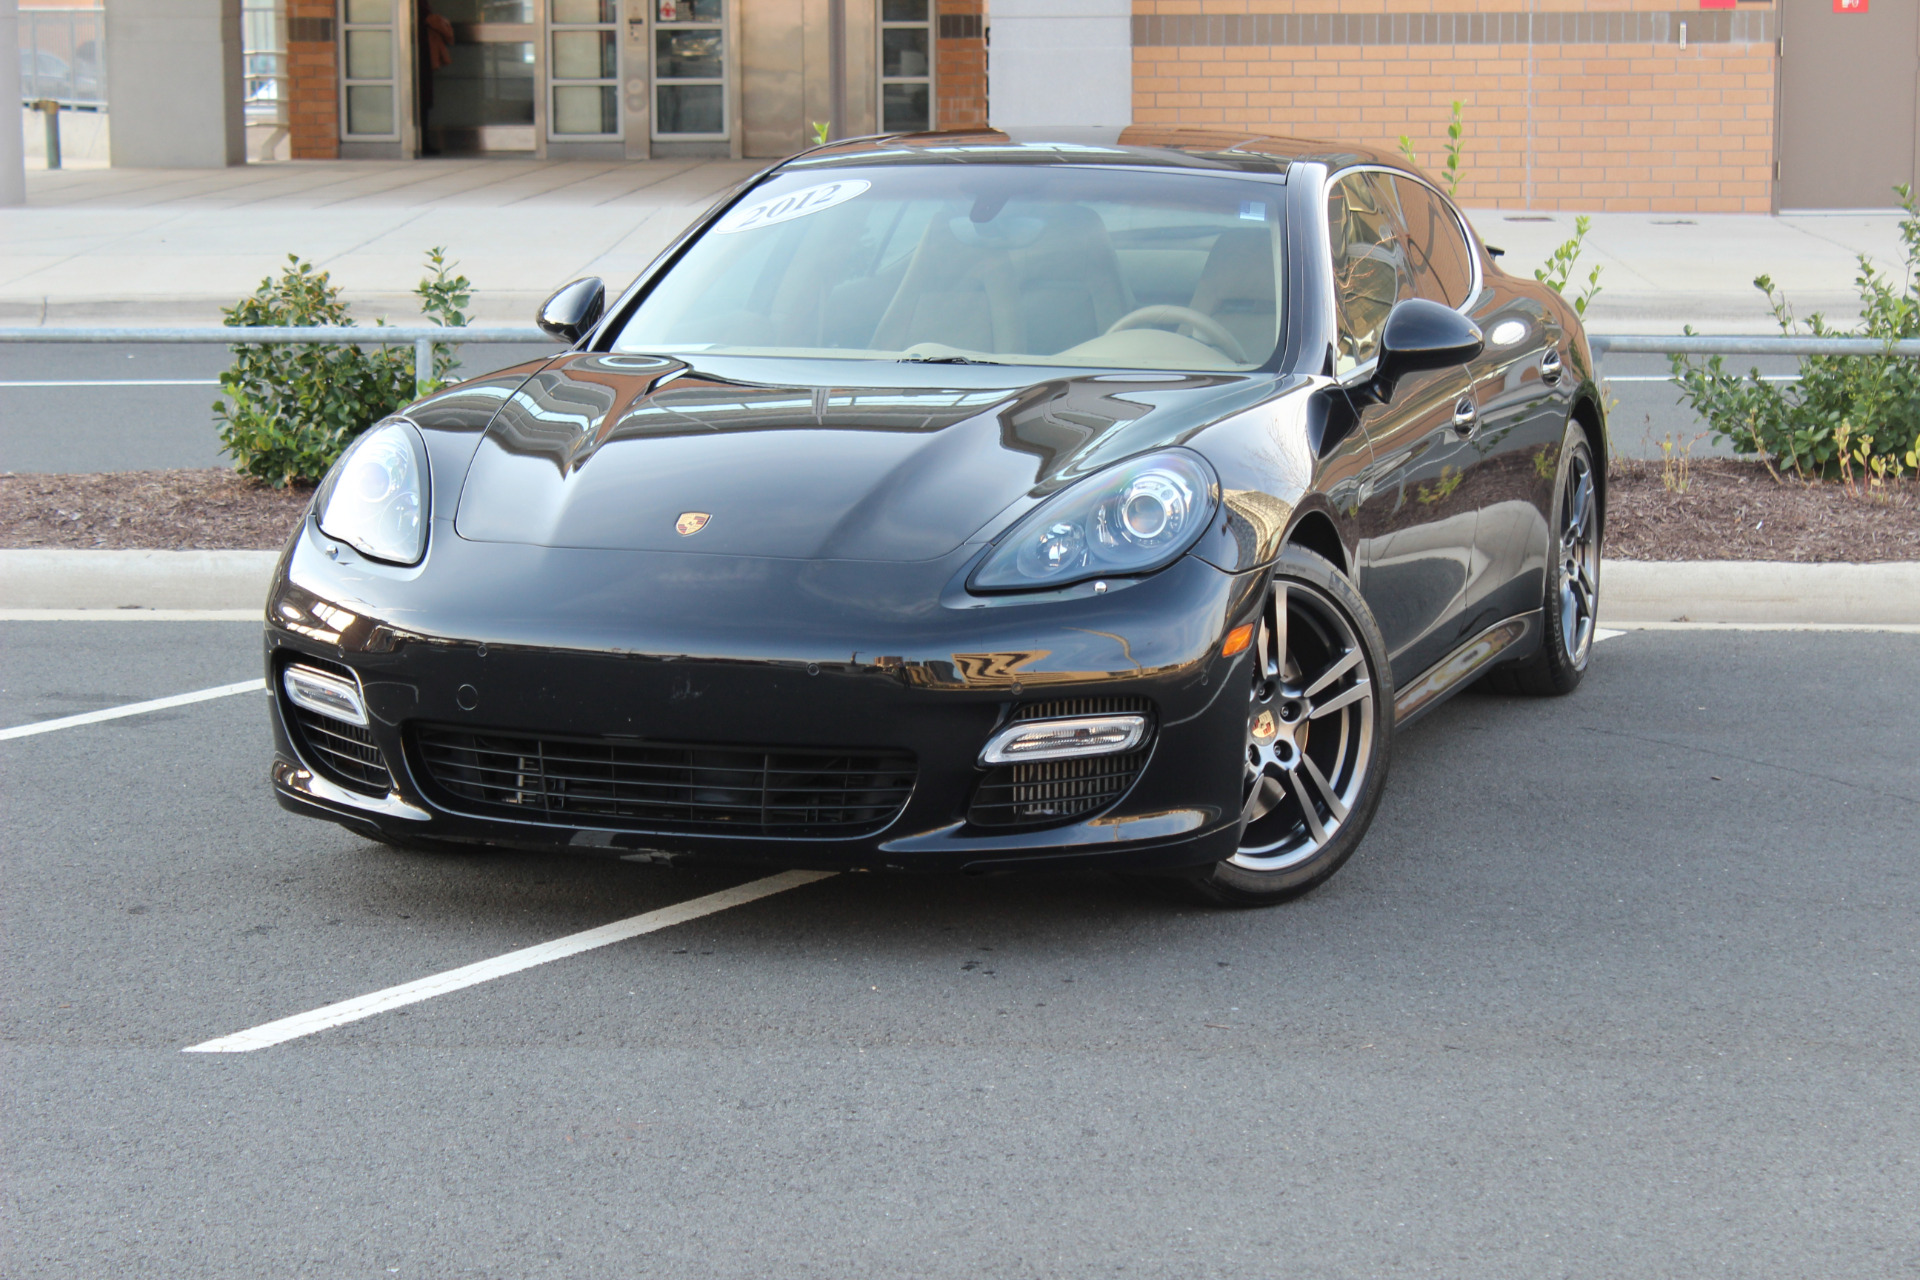 Porsche Panamera Lease >> 2012 Porsche Panamera Turbo Stock # 5NC050691C for sale near Vienna, VA | VA Porsche Dealer For ...